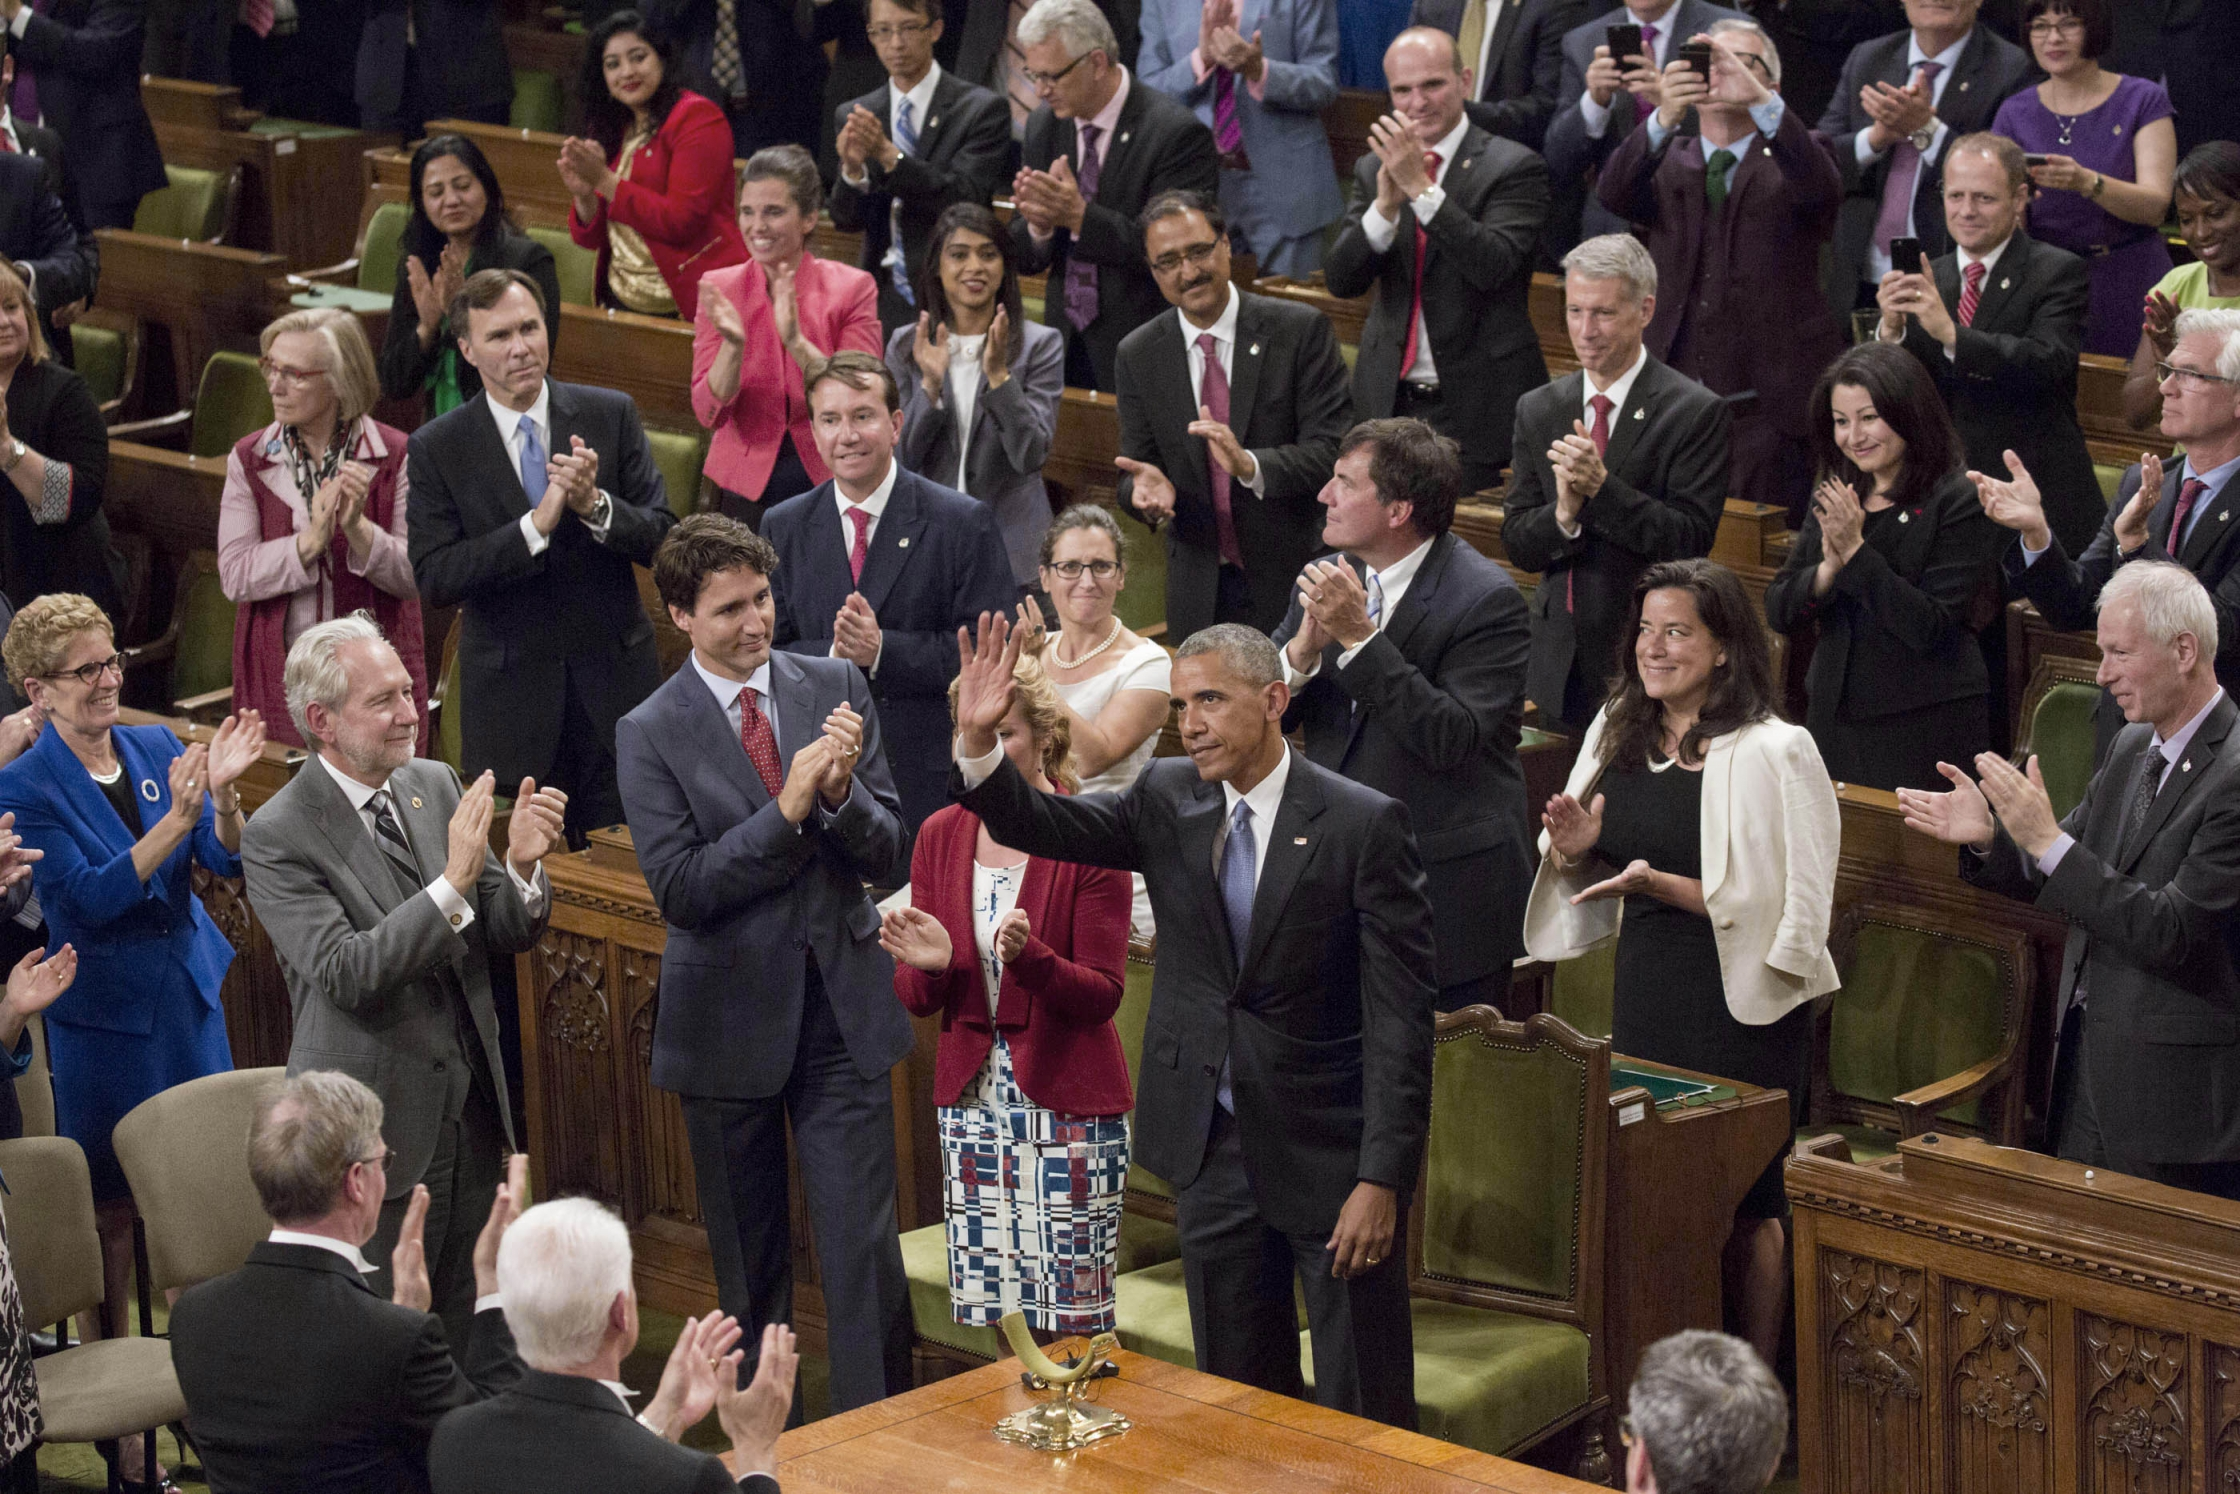 President Barack Obama waves after delivering an address to Parliament in the House of Commons Chamber at Parliament Hill in Ottawa, Canada, June 29, 2016. (Official White House Photo by Lawrence Jackson)